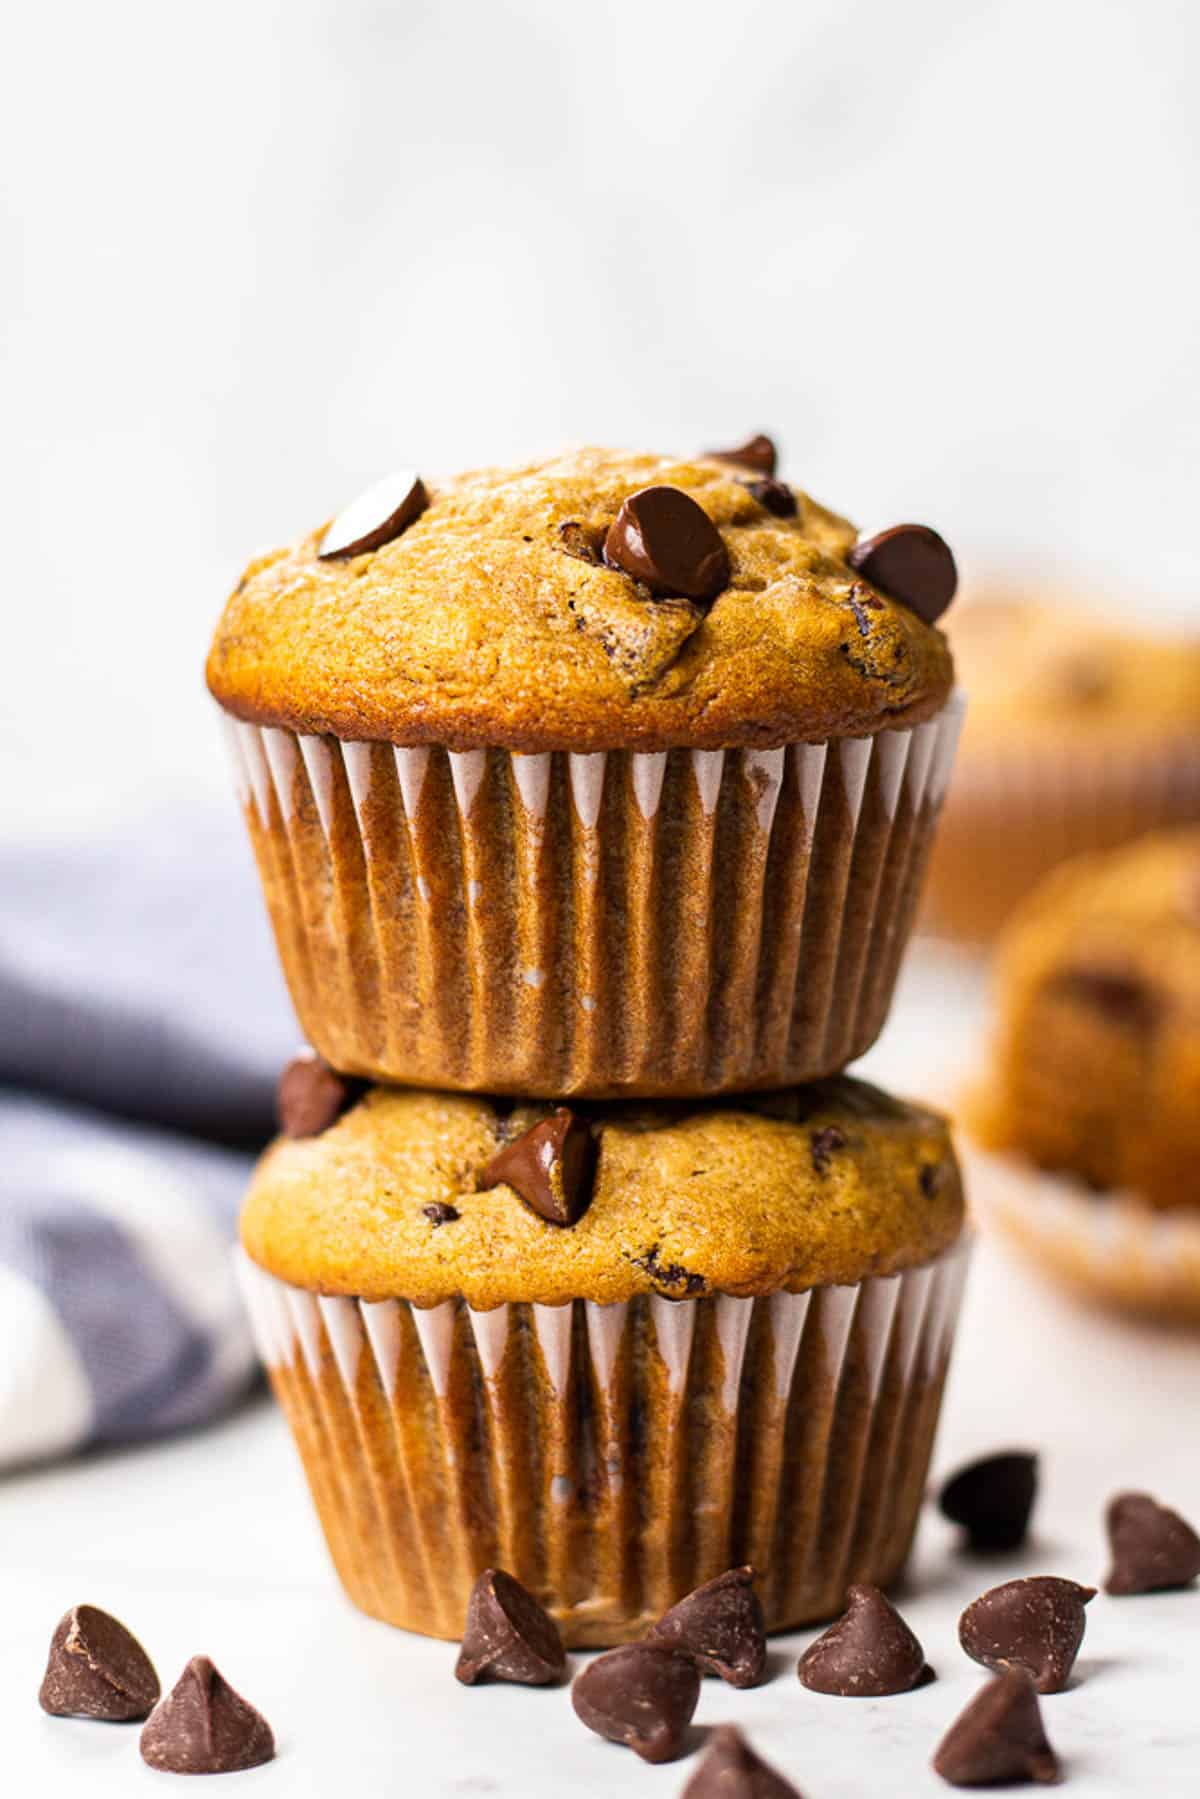 Two Banana Chocolate Chip Muffins on a table.